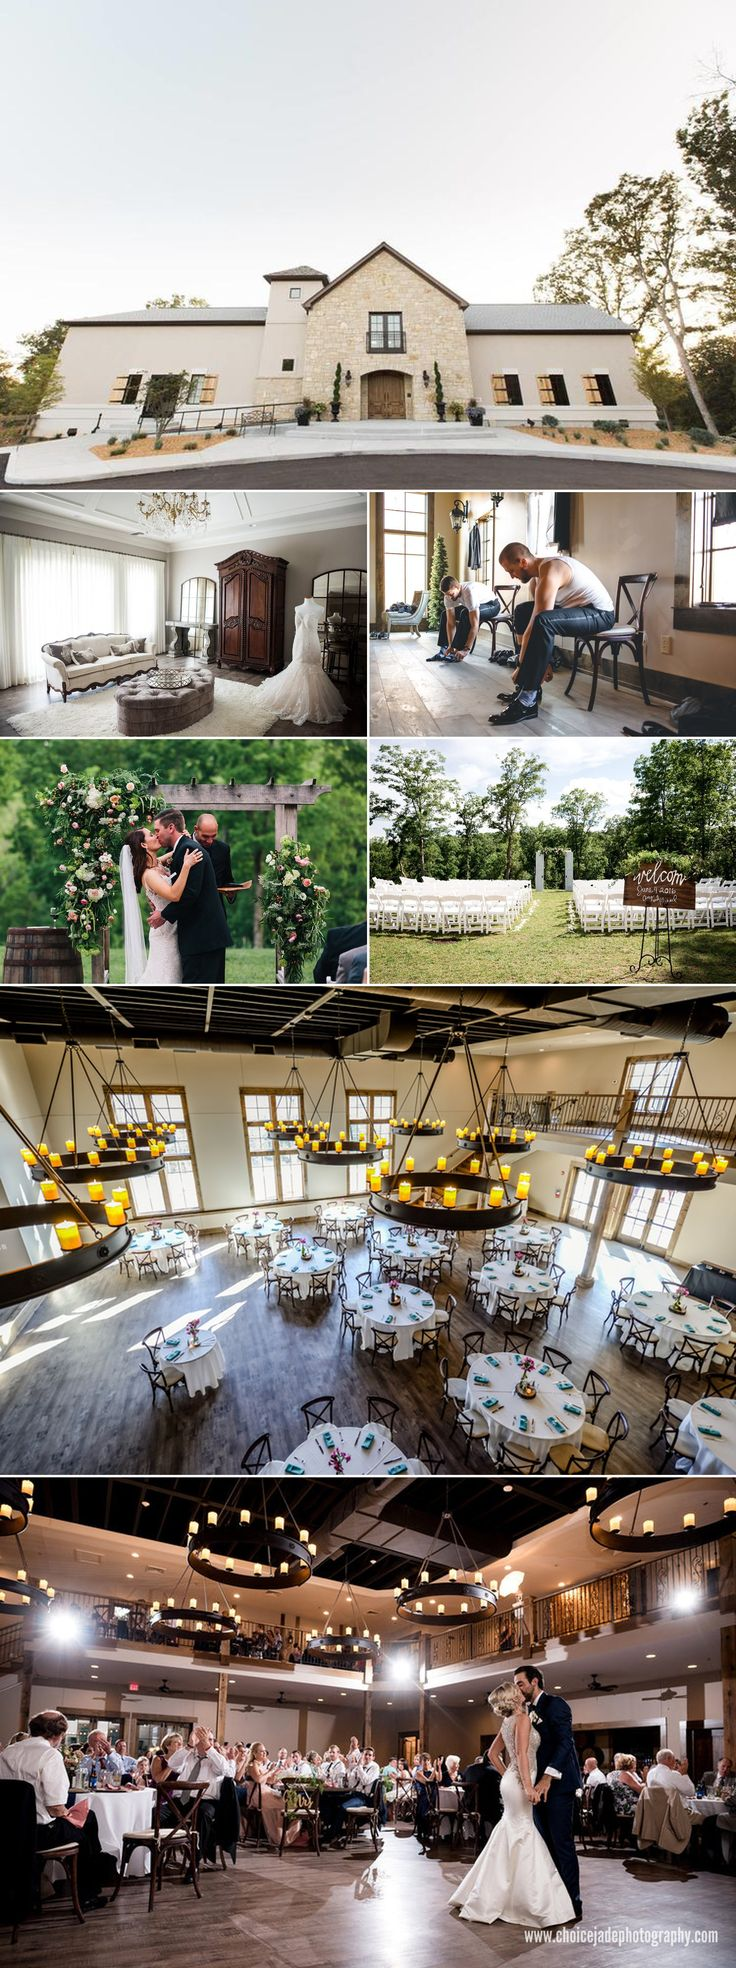 amazing new wedding venue in st louis: silver oaks chateau wedding